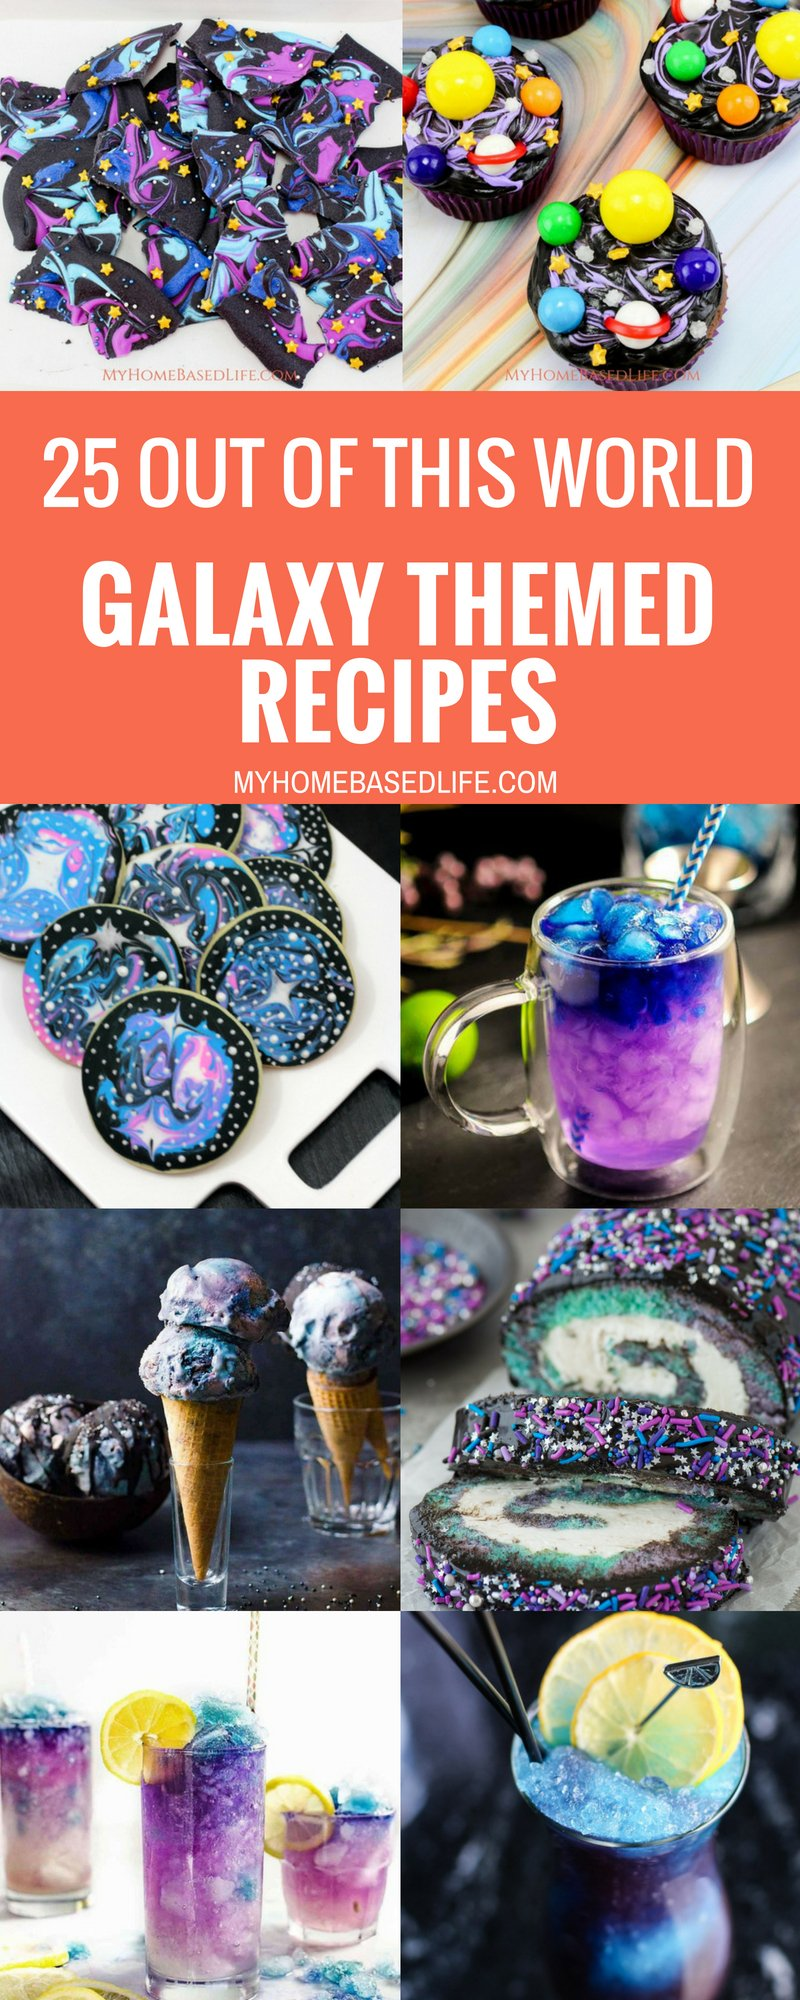 If you're looking for galaxy themed recipes, you've come to the right spot. Here are what I consider 25 of the best Galaxy Themed Recipes around! #galaxy #recipes #desserts #myhomebasedlife   Galaxy Themed Foods   Dessert Recipes   Drink Recipes   Themed Recipes  